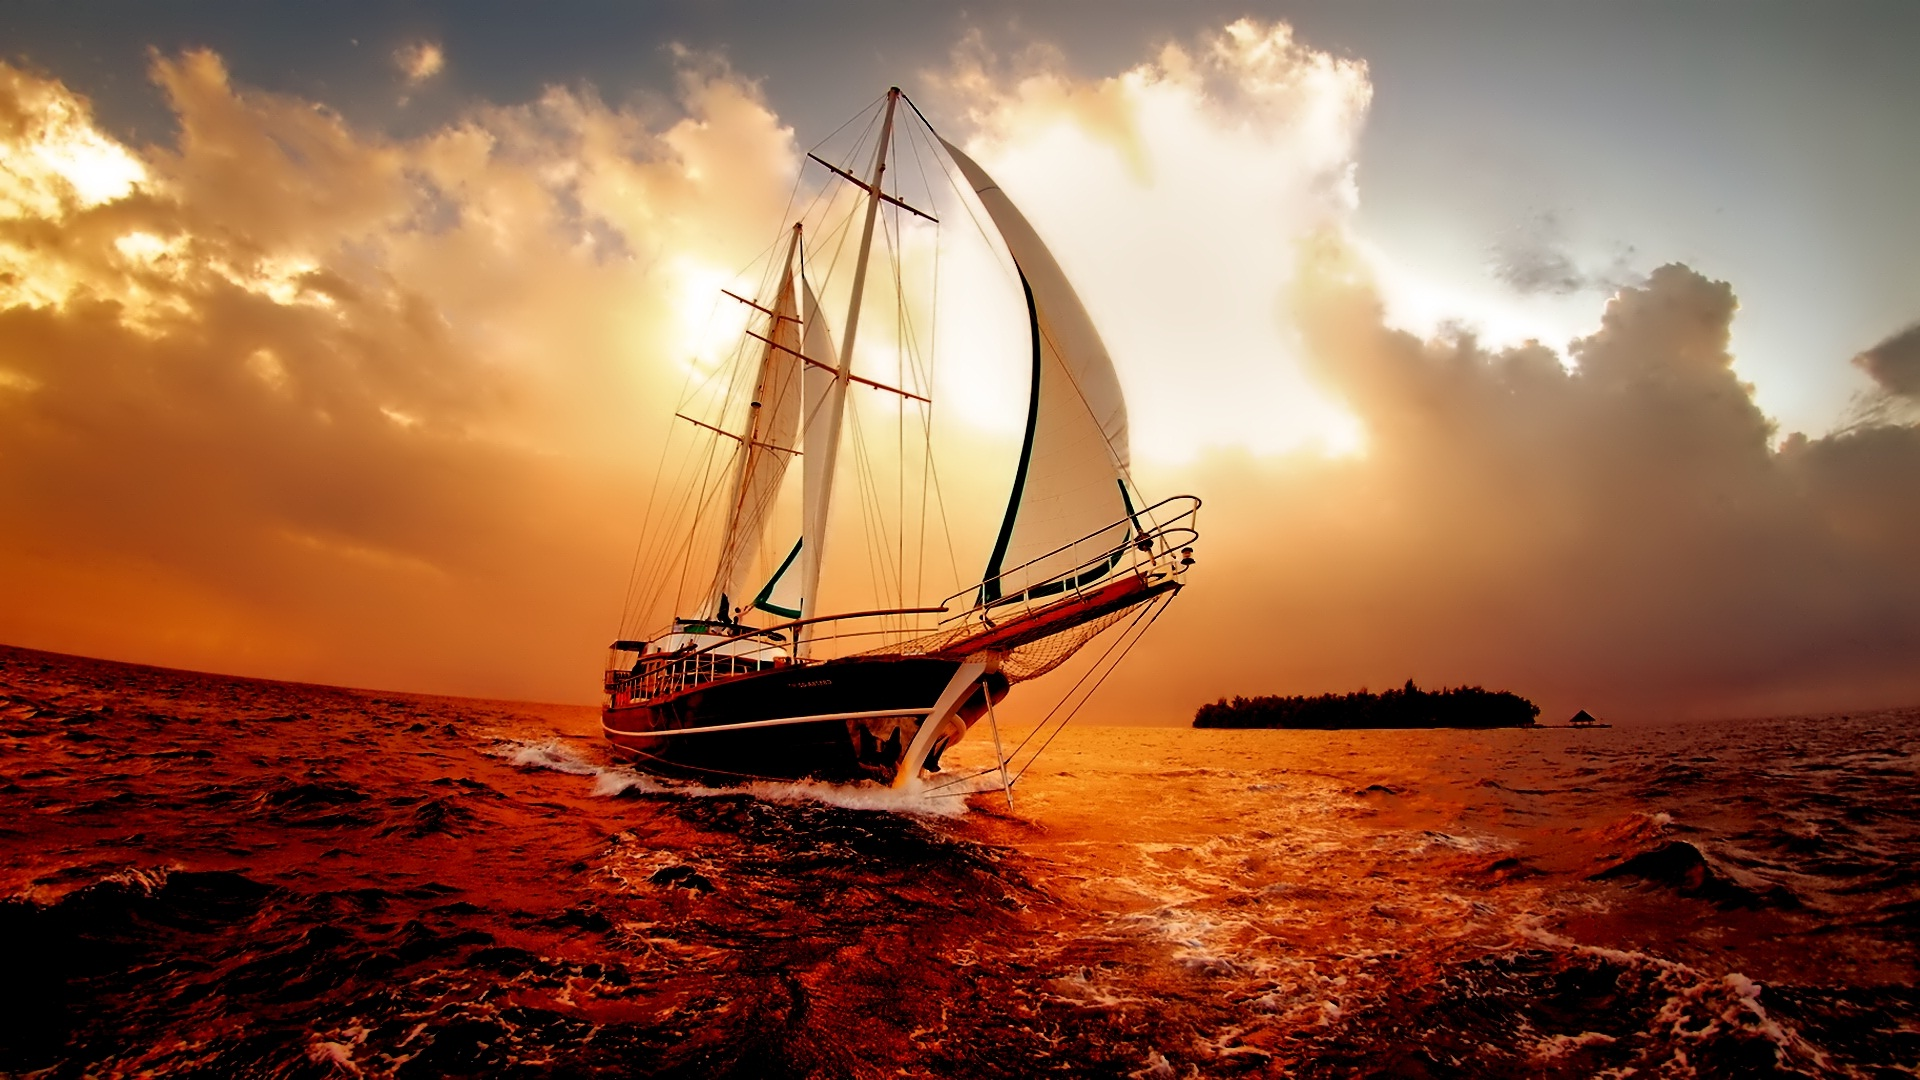 Amazing-boat-in-sea-marvelous-1920×1080-wallpaper-wp3602415